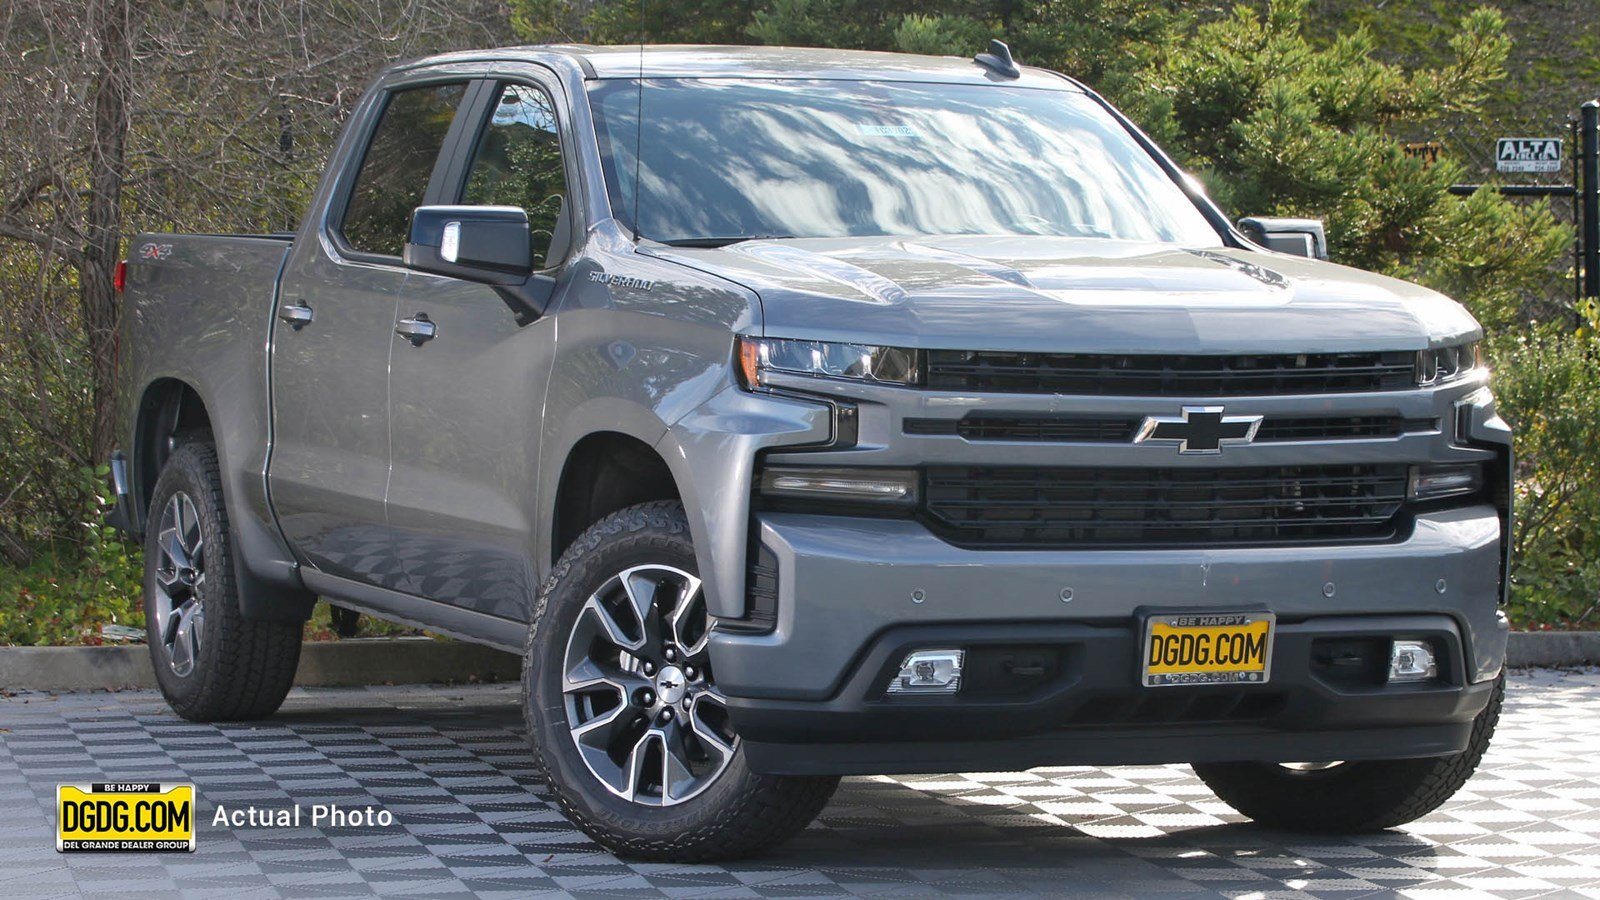 2020 Chevrolet Silverado 1500 Rst 4Wd 2021 Chevrolet Silverado 1500 Rst Owners Manual, Pictures, Transmission